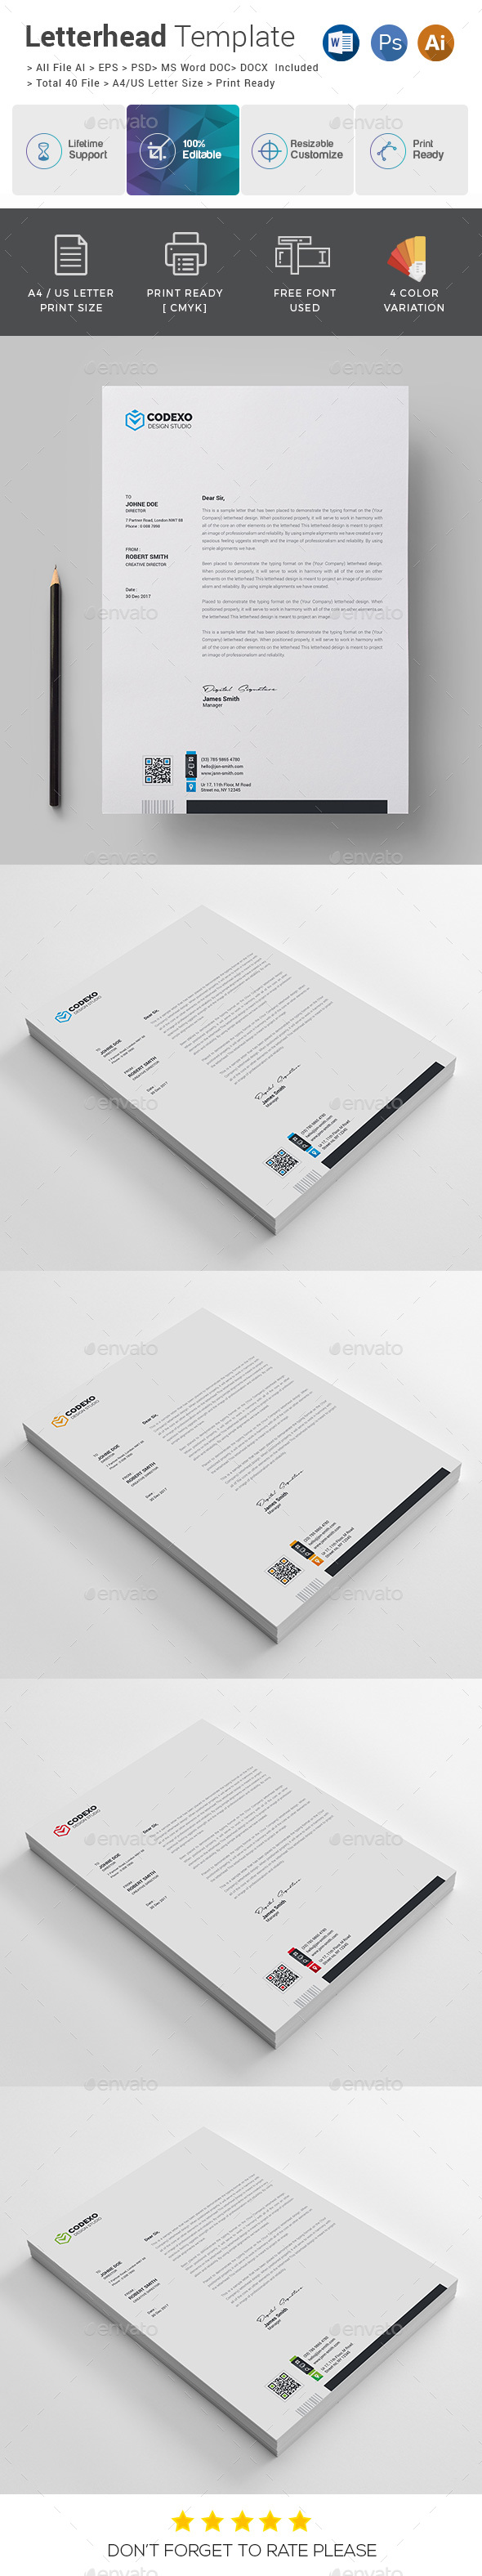 Letterhead template by generousart graphicriver letterhead template stationery print templates spiritdancerdesigns Choice Image